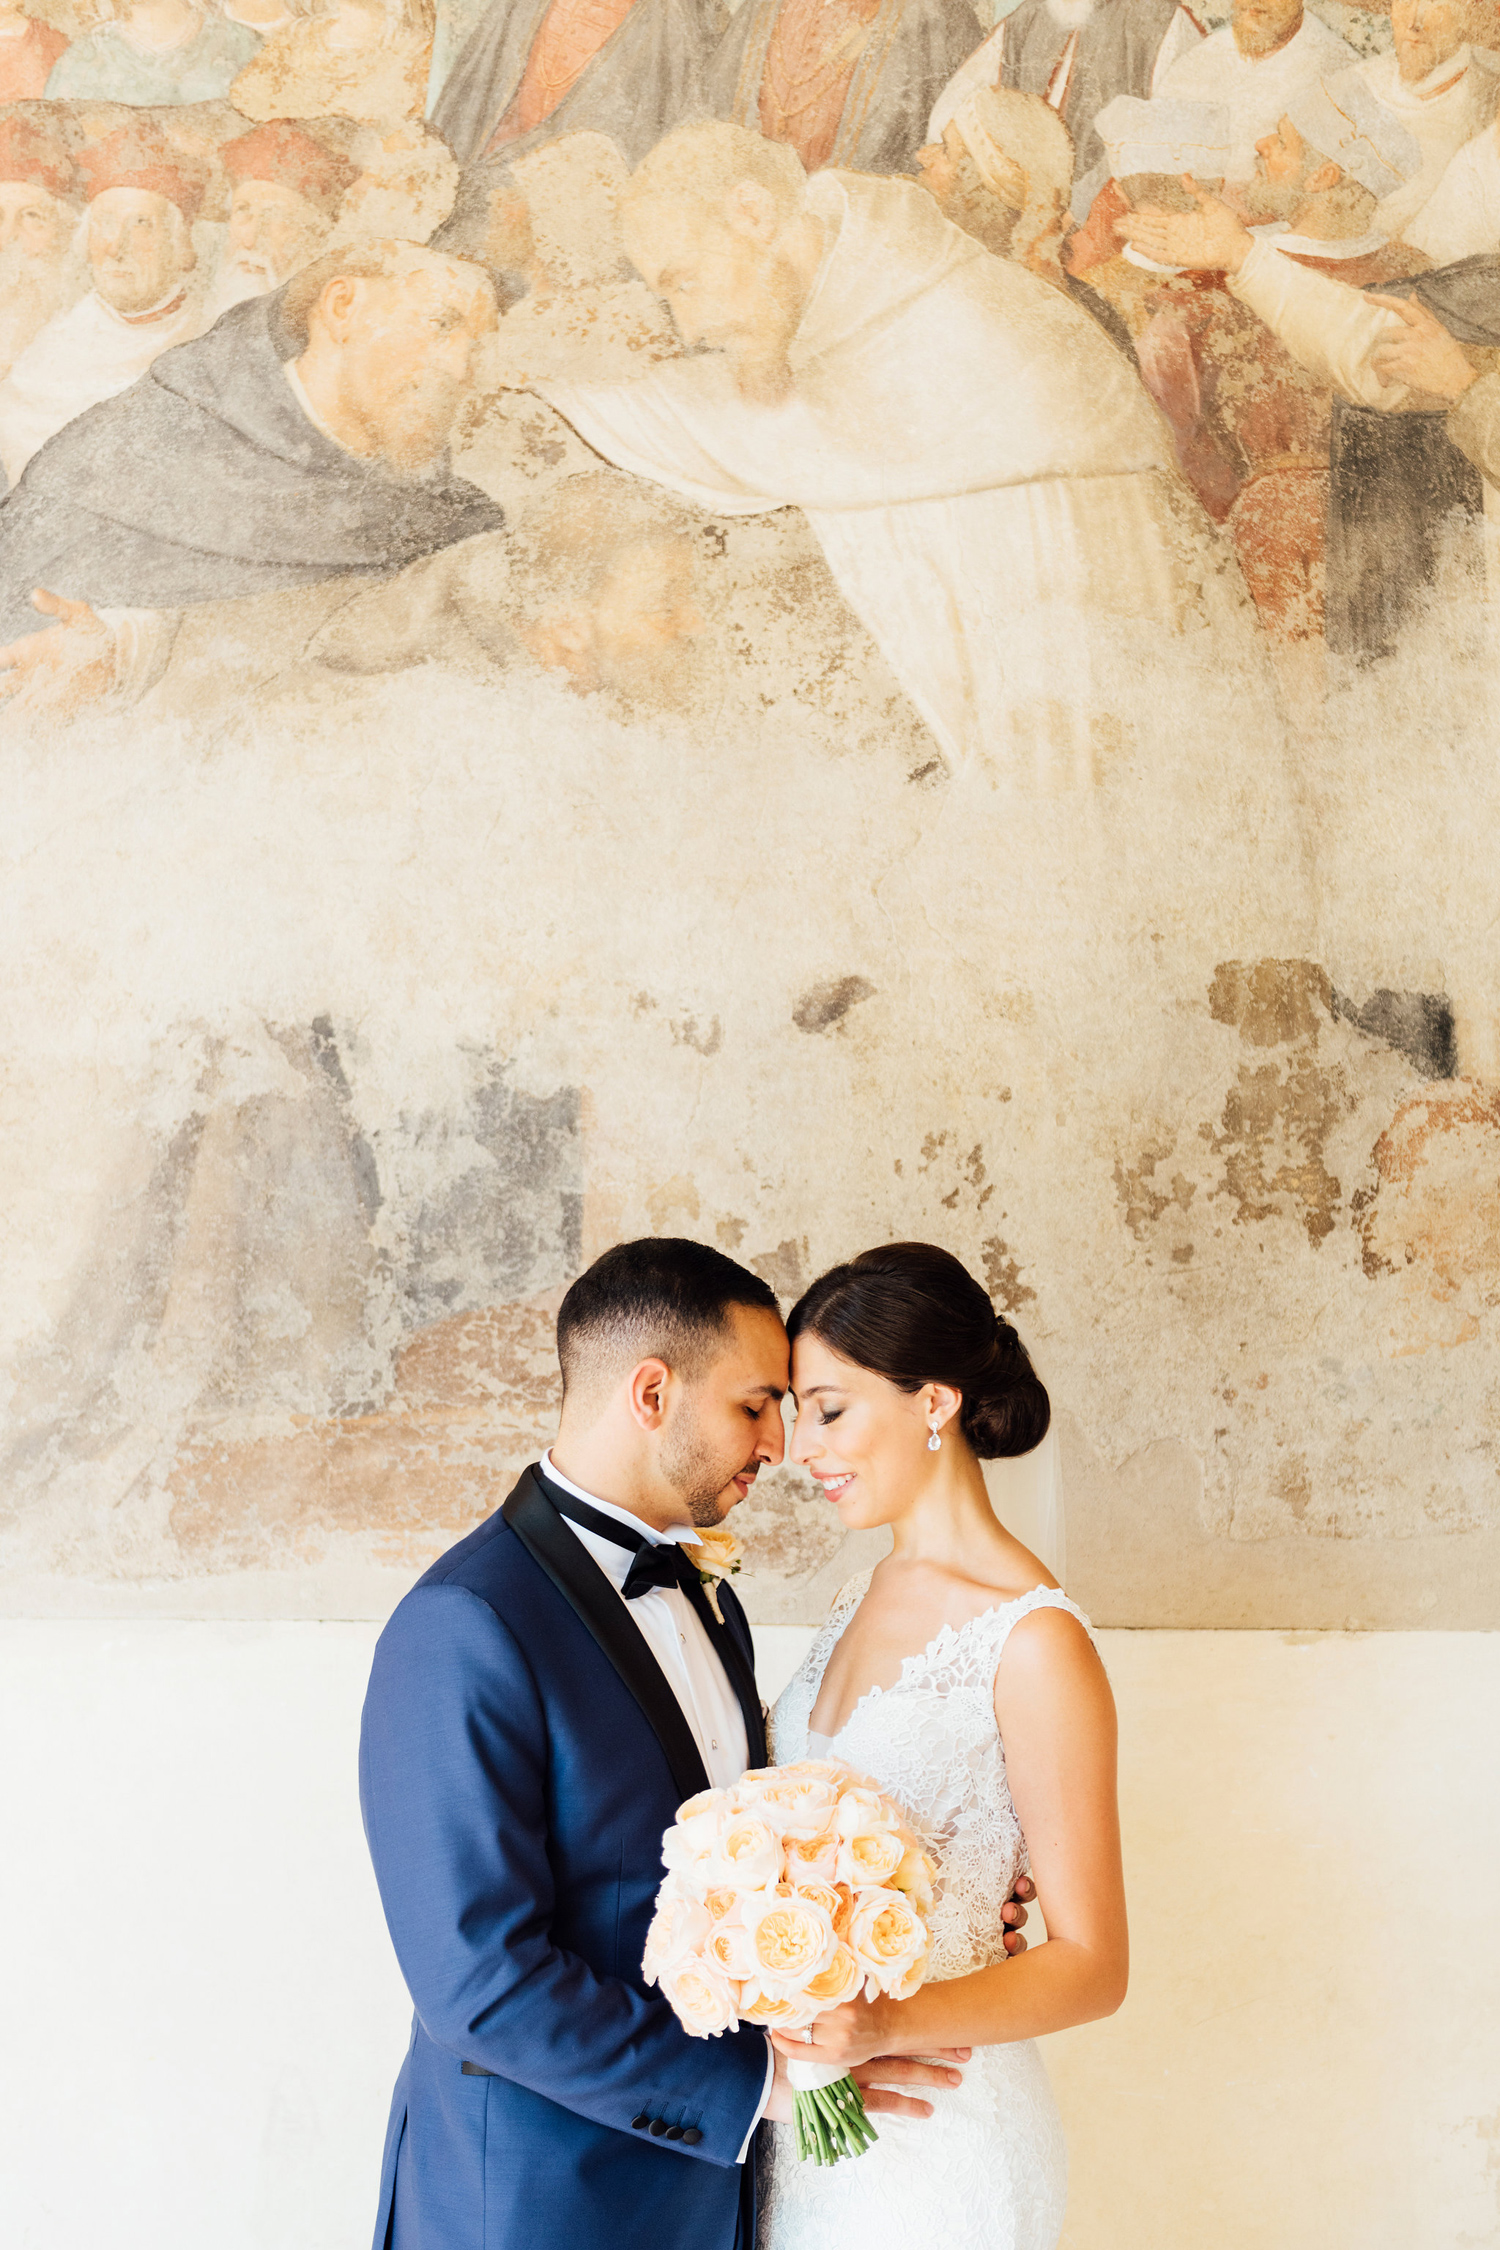 katie_mitchell_wedding_florence_tuscany_villa_di_miano_wedding_photography_29.jpg